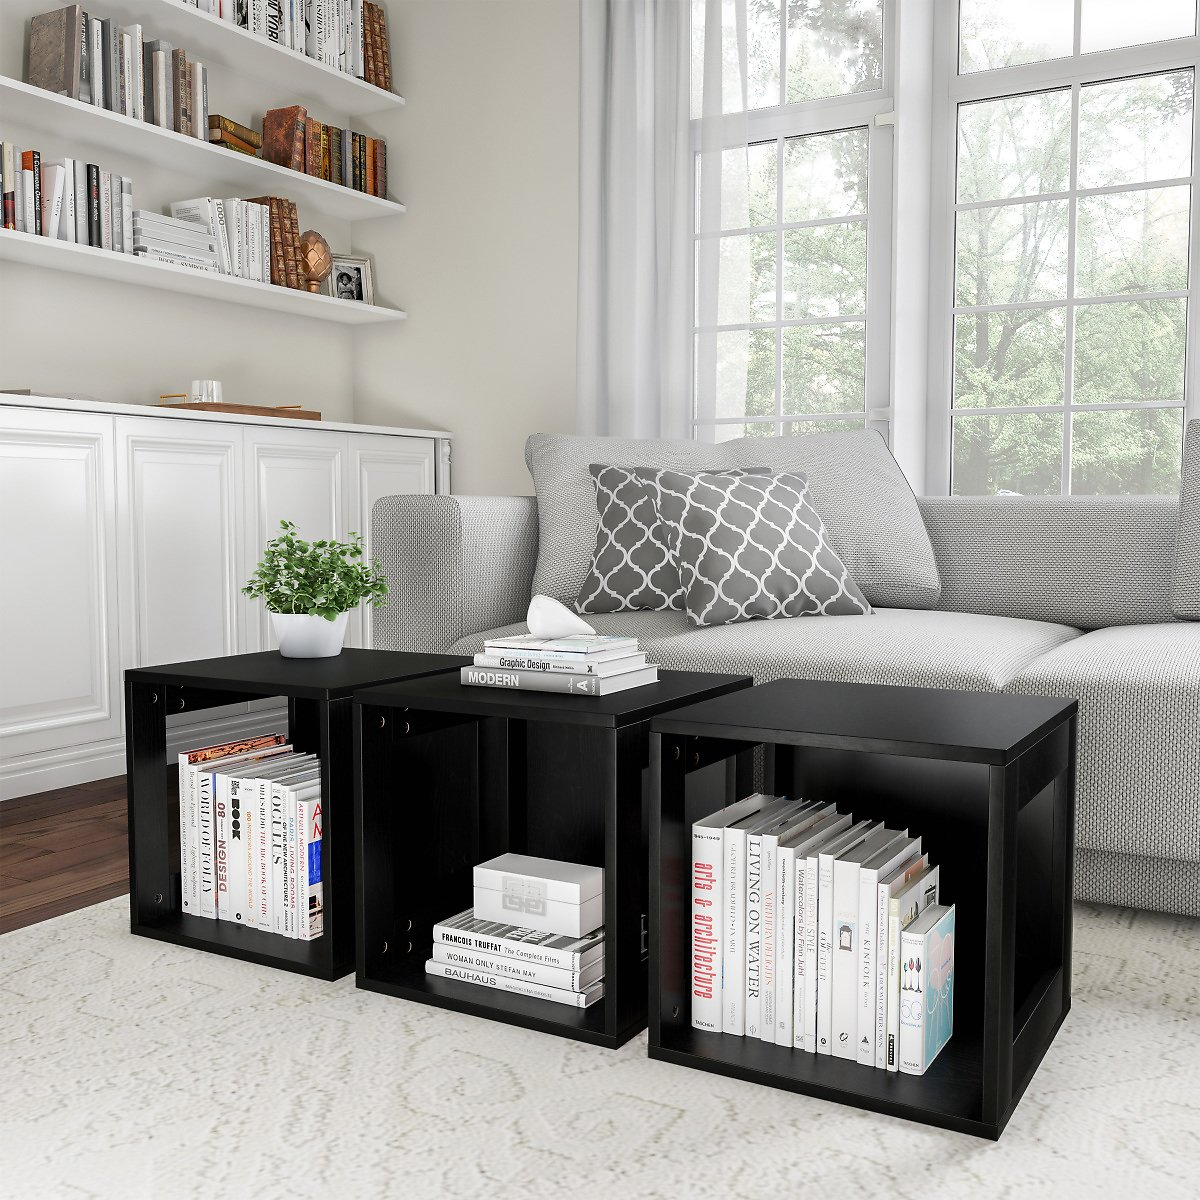 End Table – Stackable Modular Cube Accent Table with Open Sides By Lavish Home (Black)